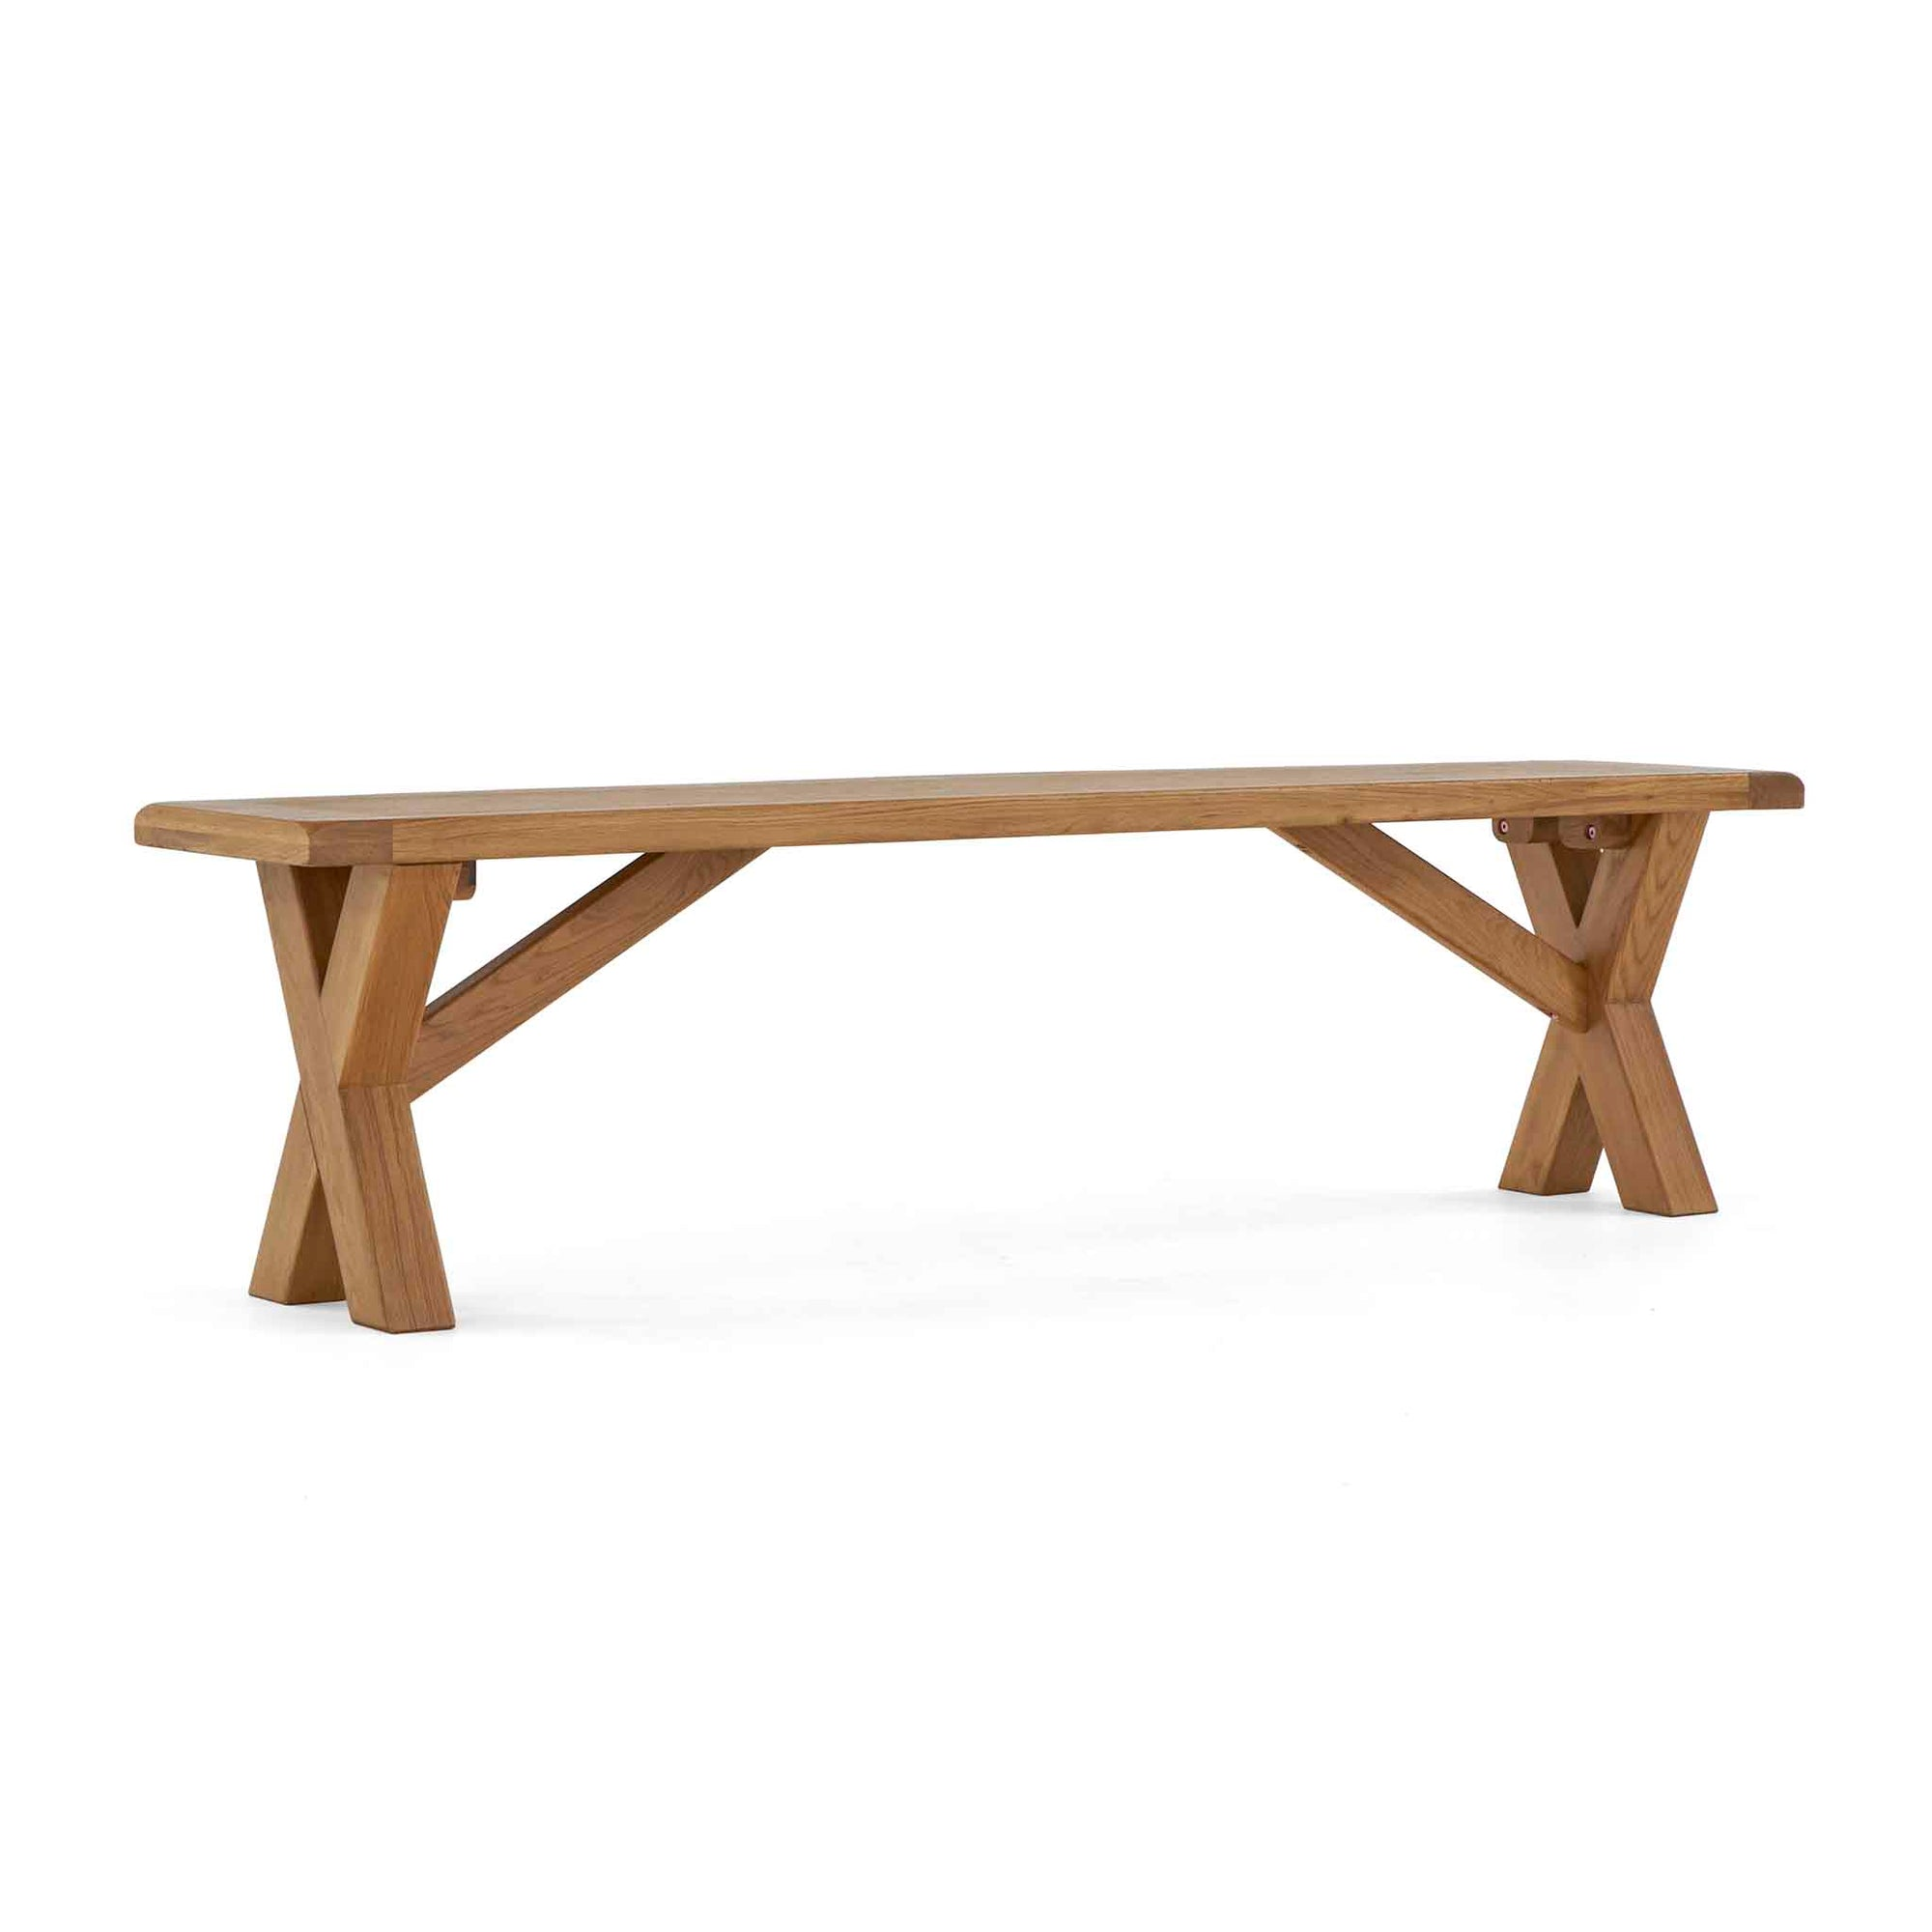 Zelah Oak Cross Legged Bench by Roseland Furniture